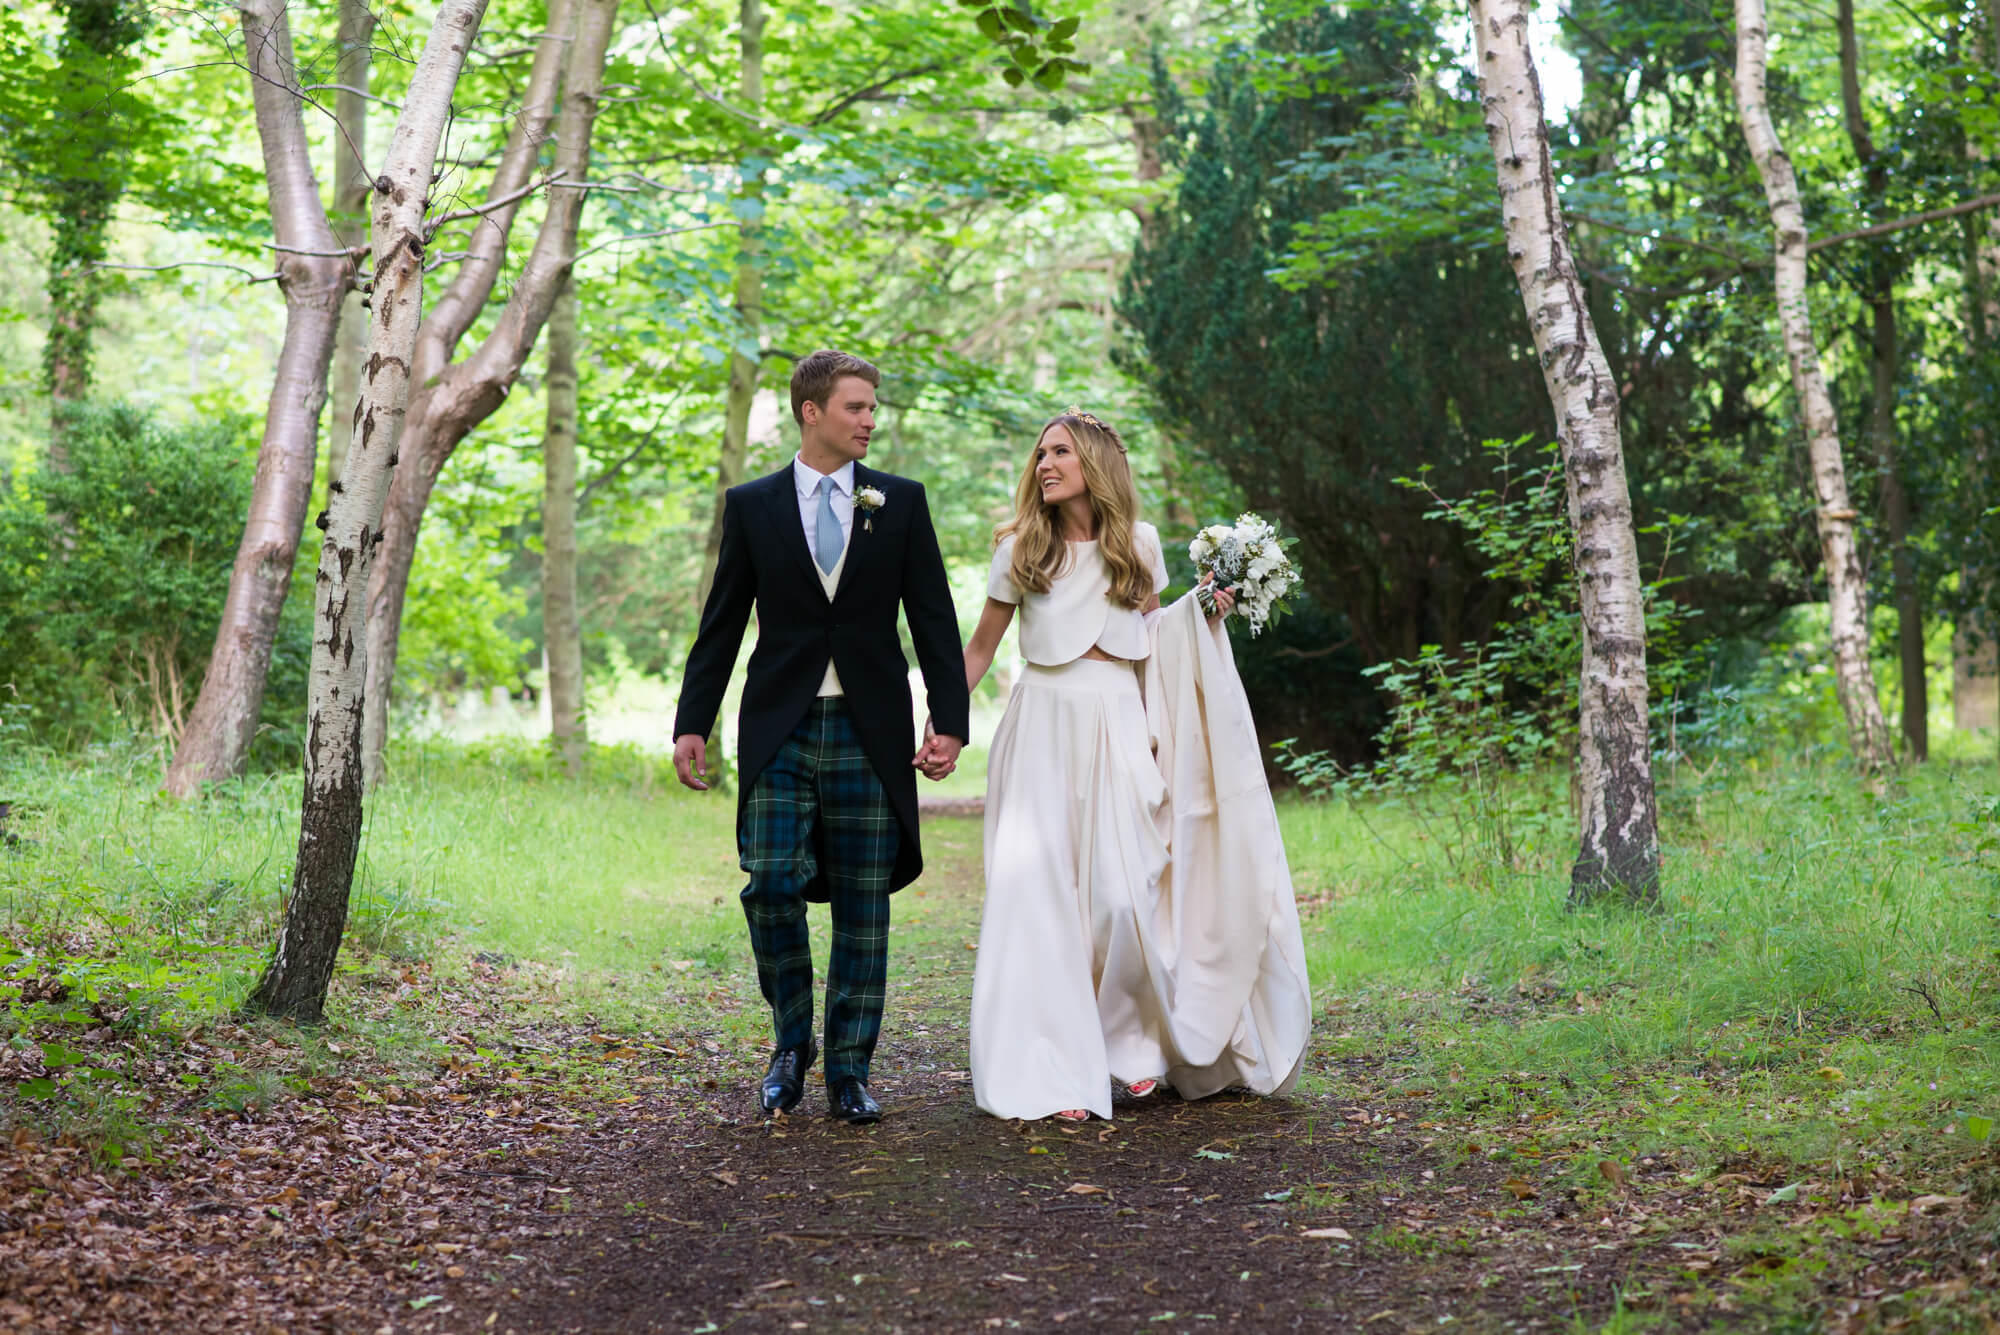 bride and groom walking in the woods at Gosford House wedding in Scotland by Especially Amy wedding photography